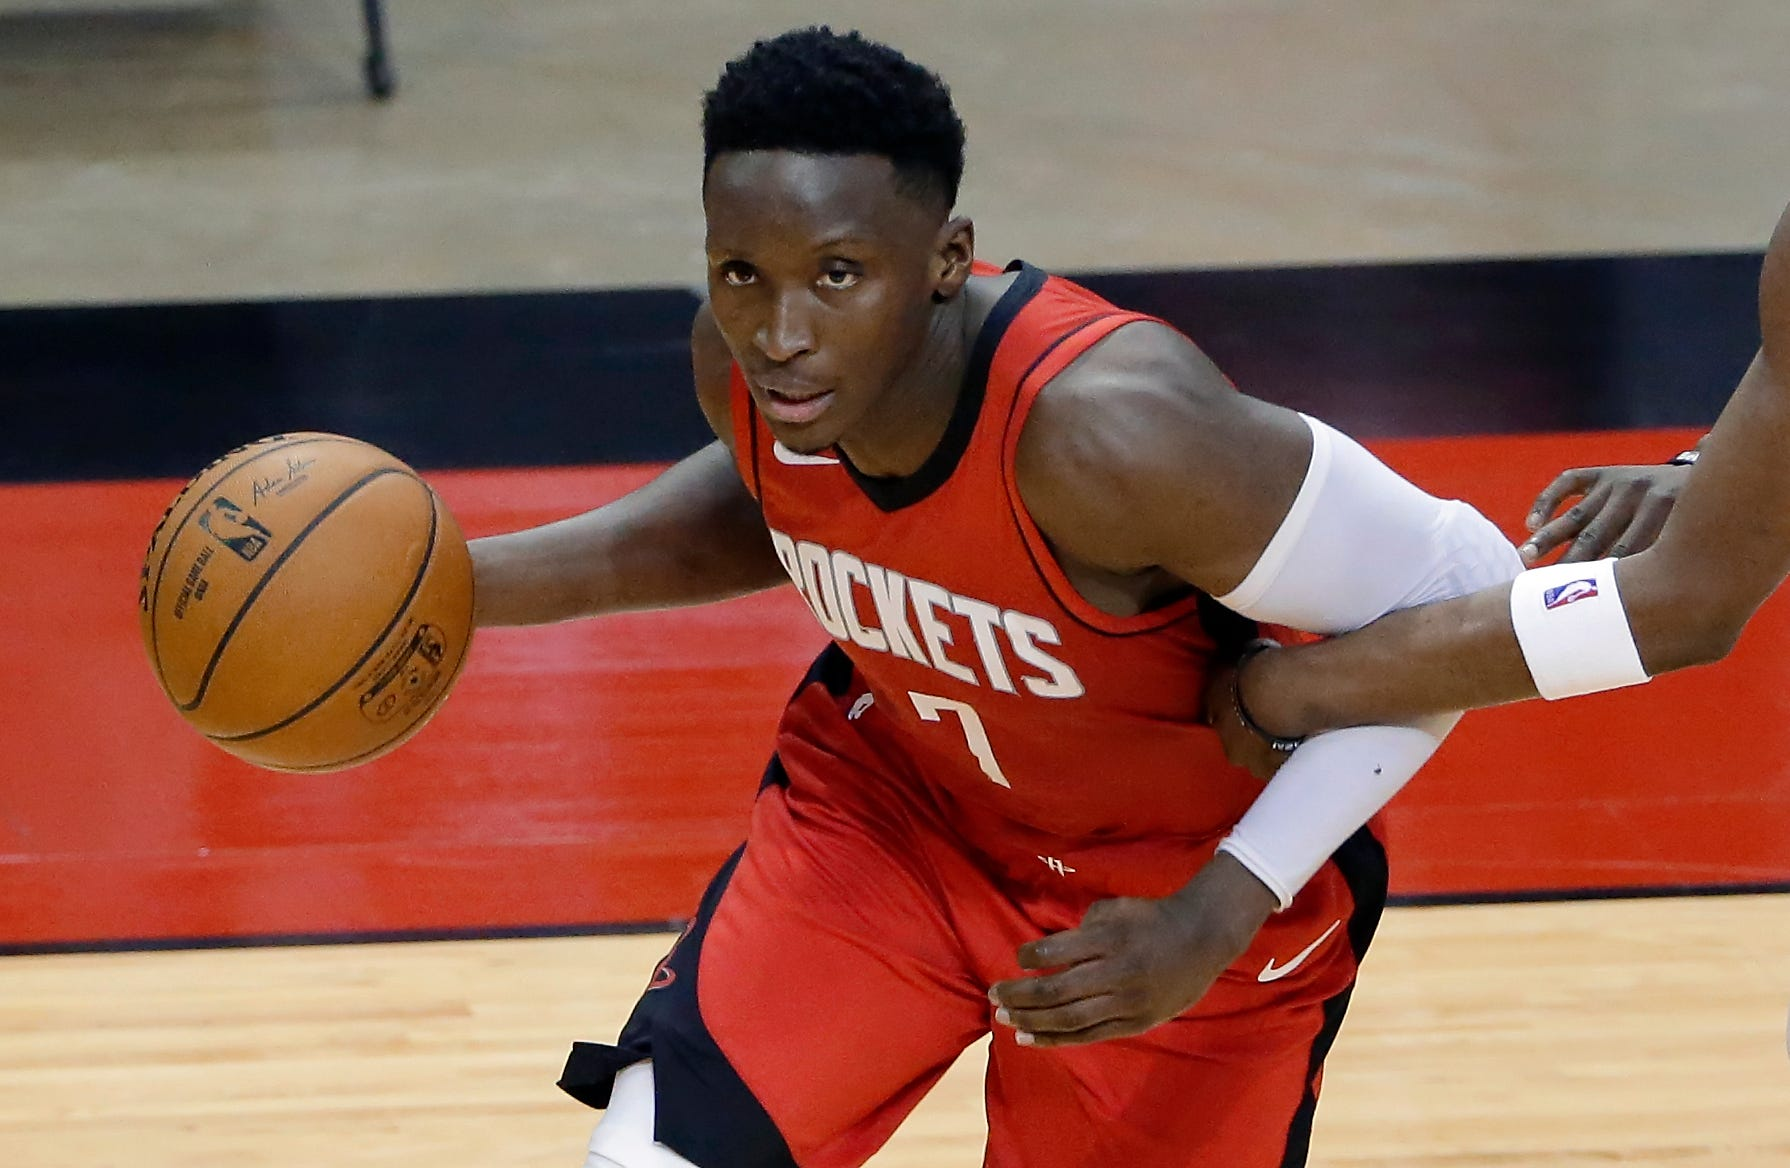 victor-oladipo-bio-age-career-height-body-stat-net-worth-game-stat